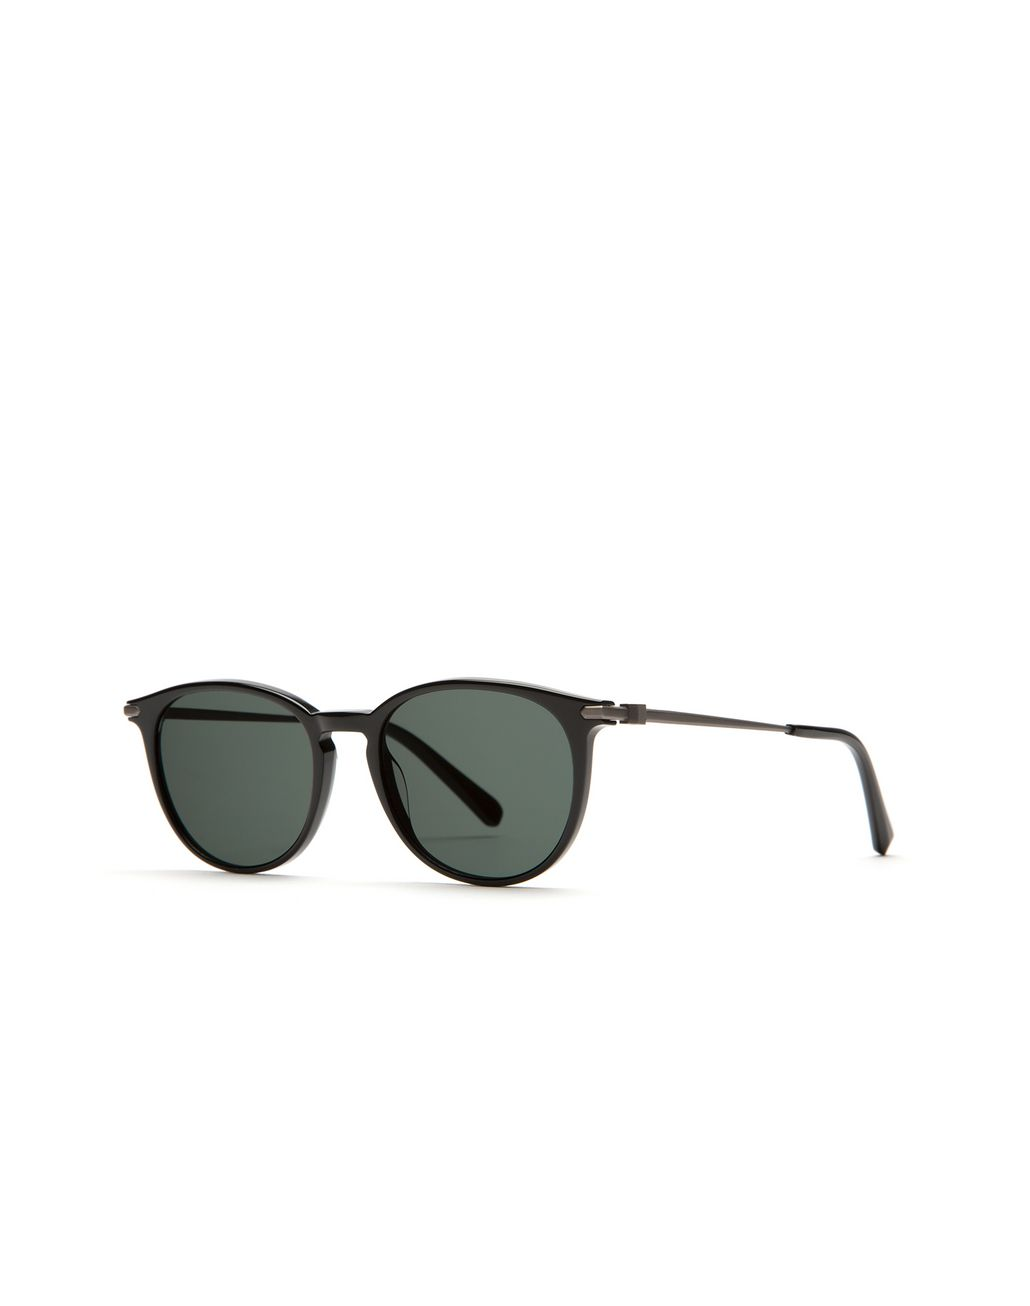 BRIONI Shiny Black Retro Pantos Sunglasses Sunglasses U r